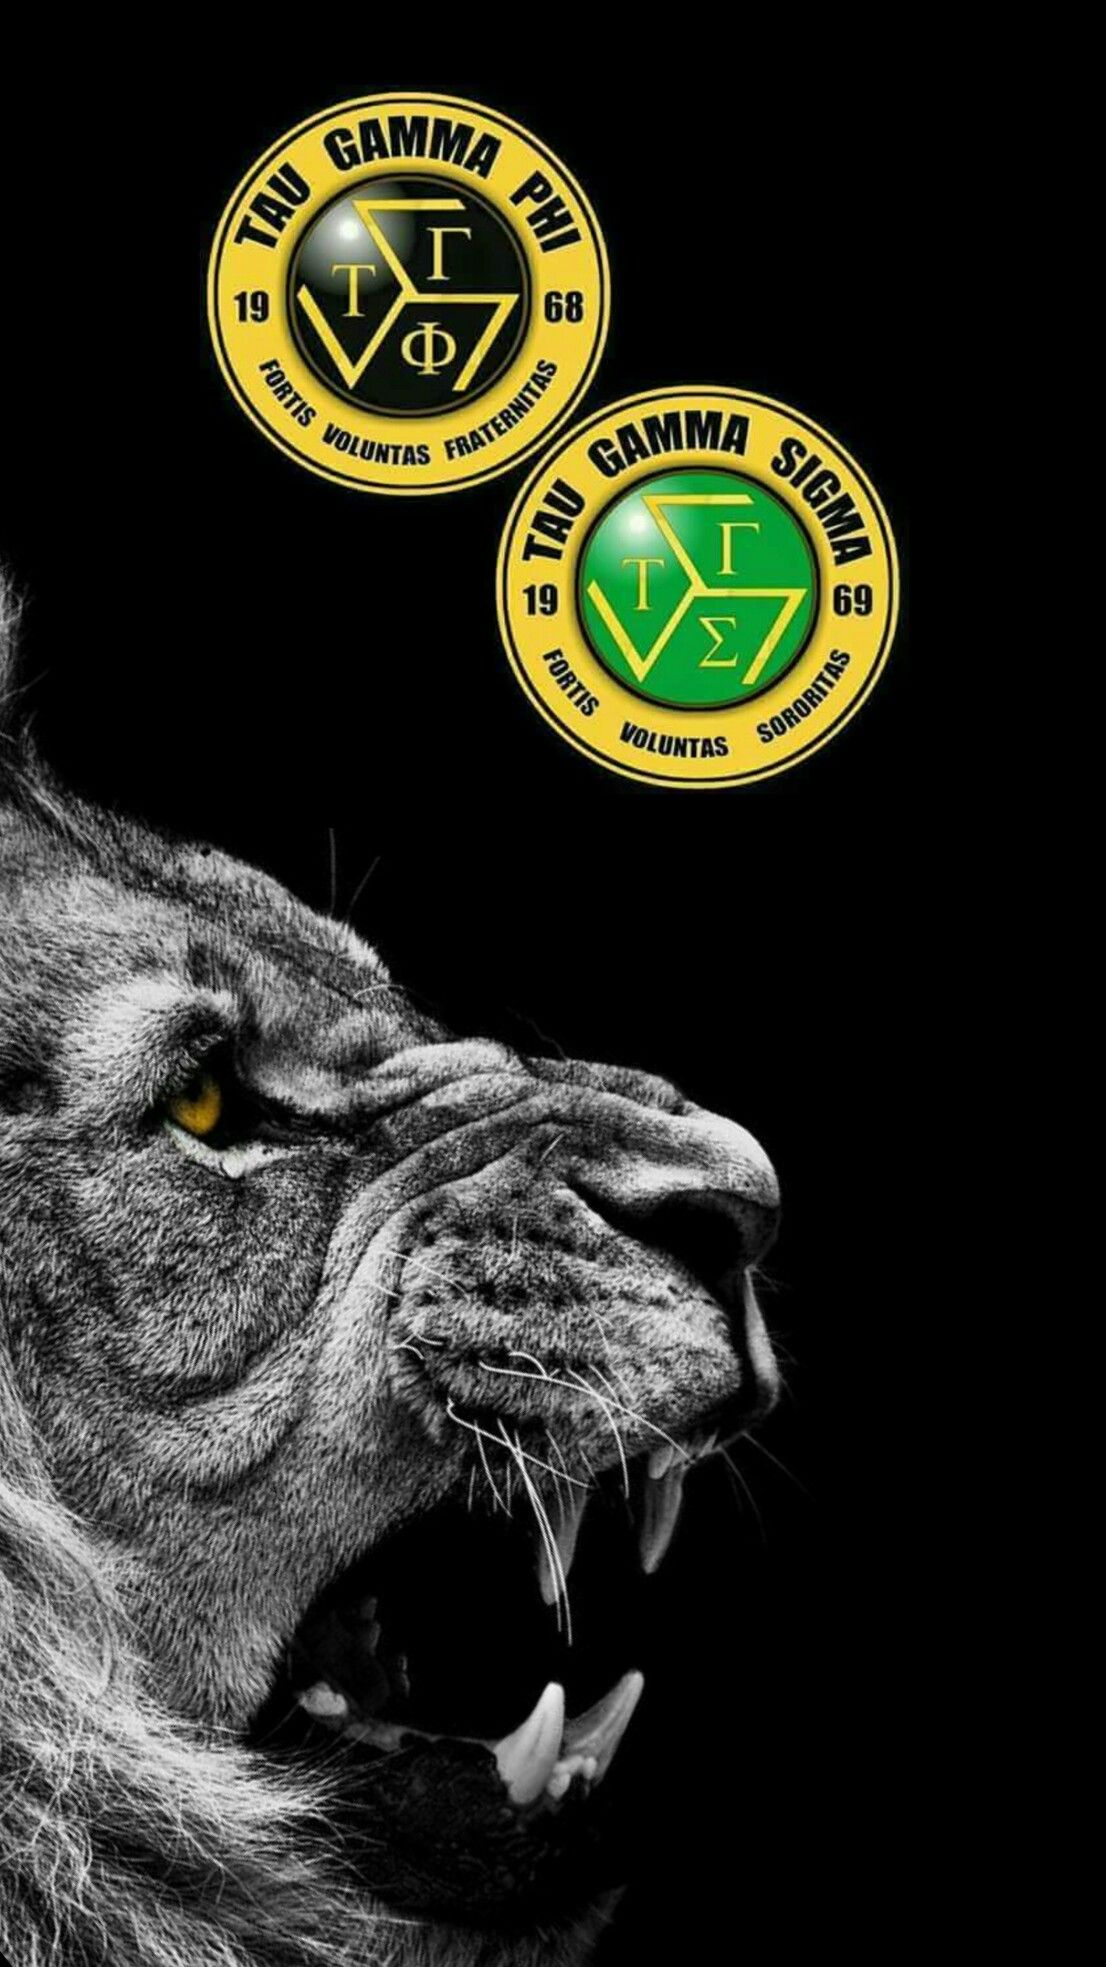 Taugamma Triskelion Black Wallpaper Androidwallpaper Iphonewallpaper Ios Android Tau Gamma Black Wallpaper Tree Wallpaper Iphone